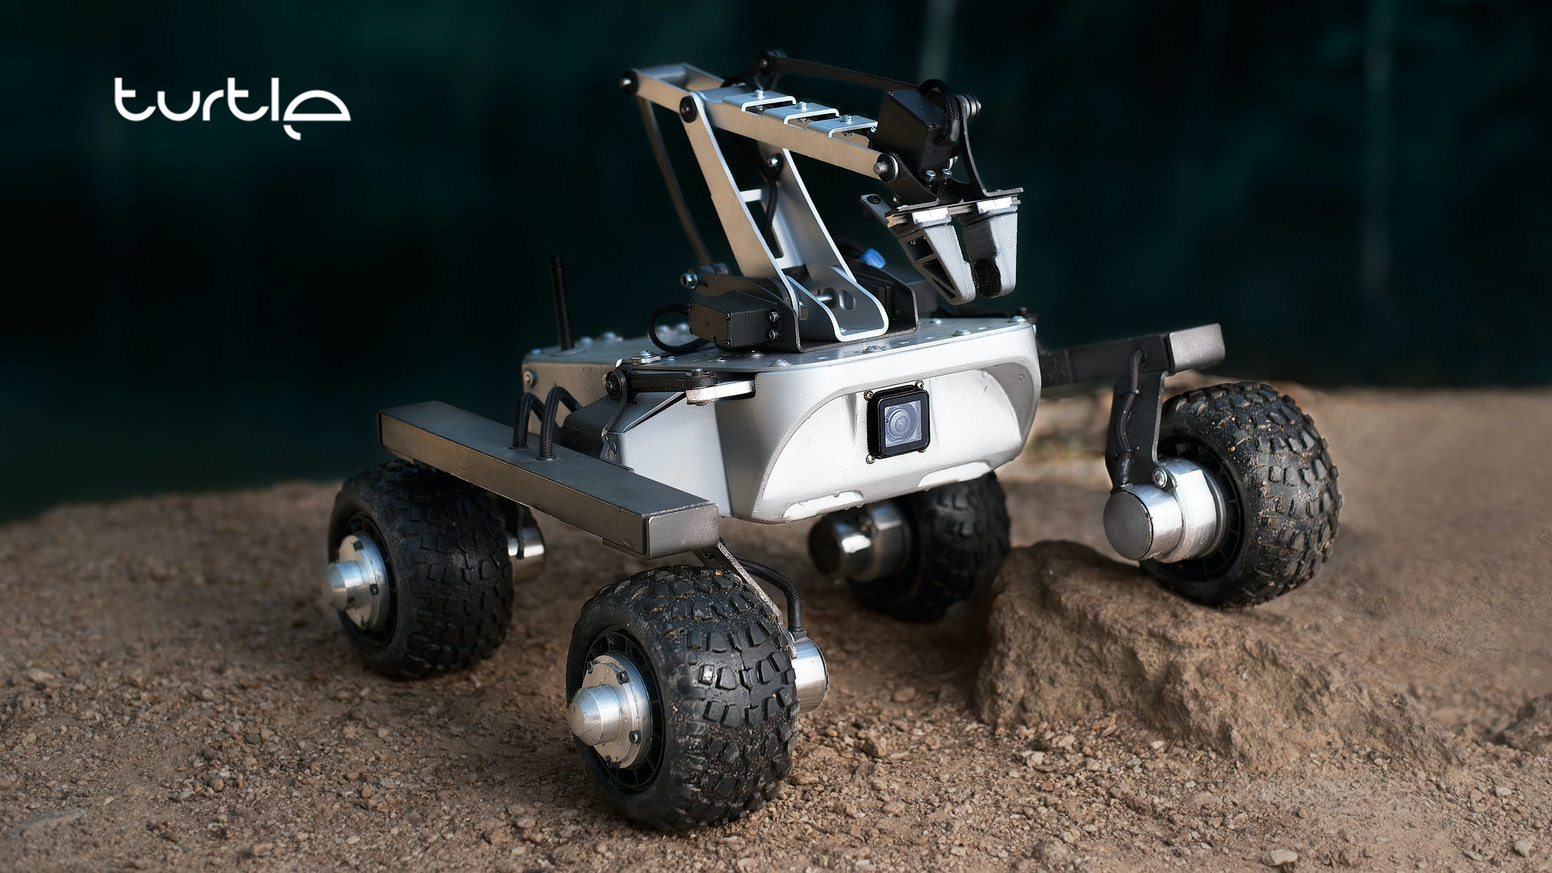 Turtle Rover - waterproof programmable RC robot by Kell ideas ...